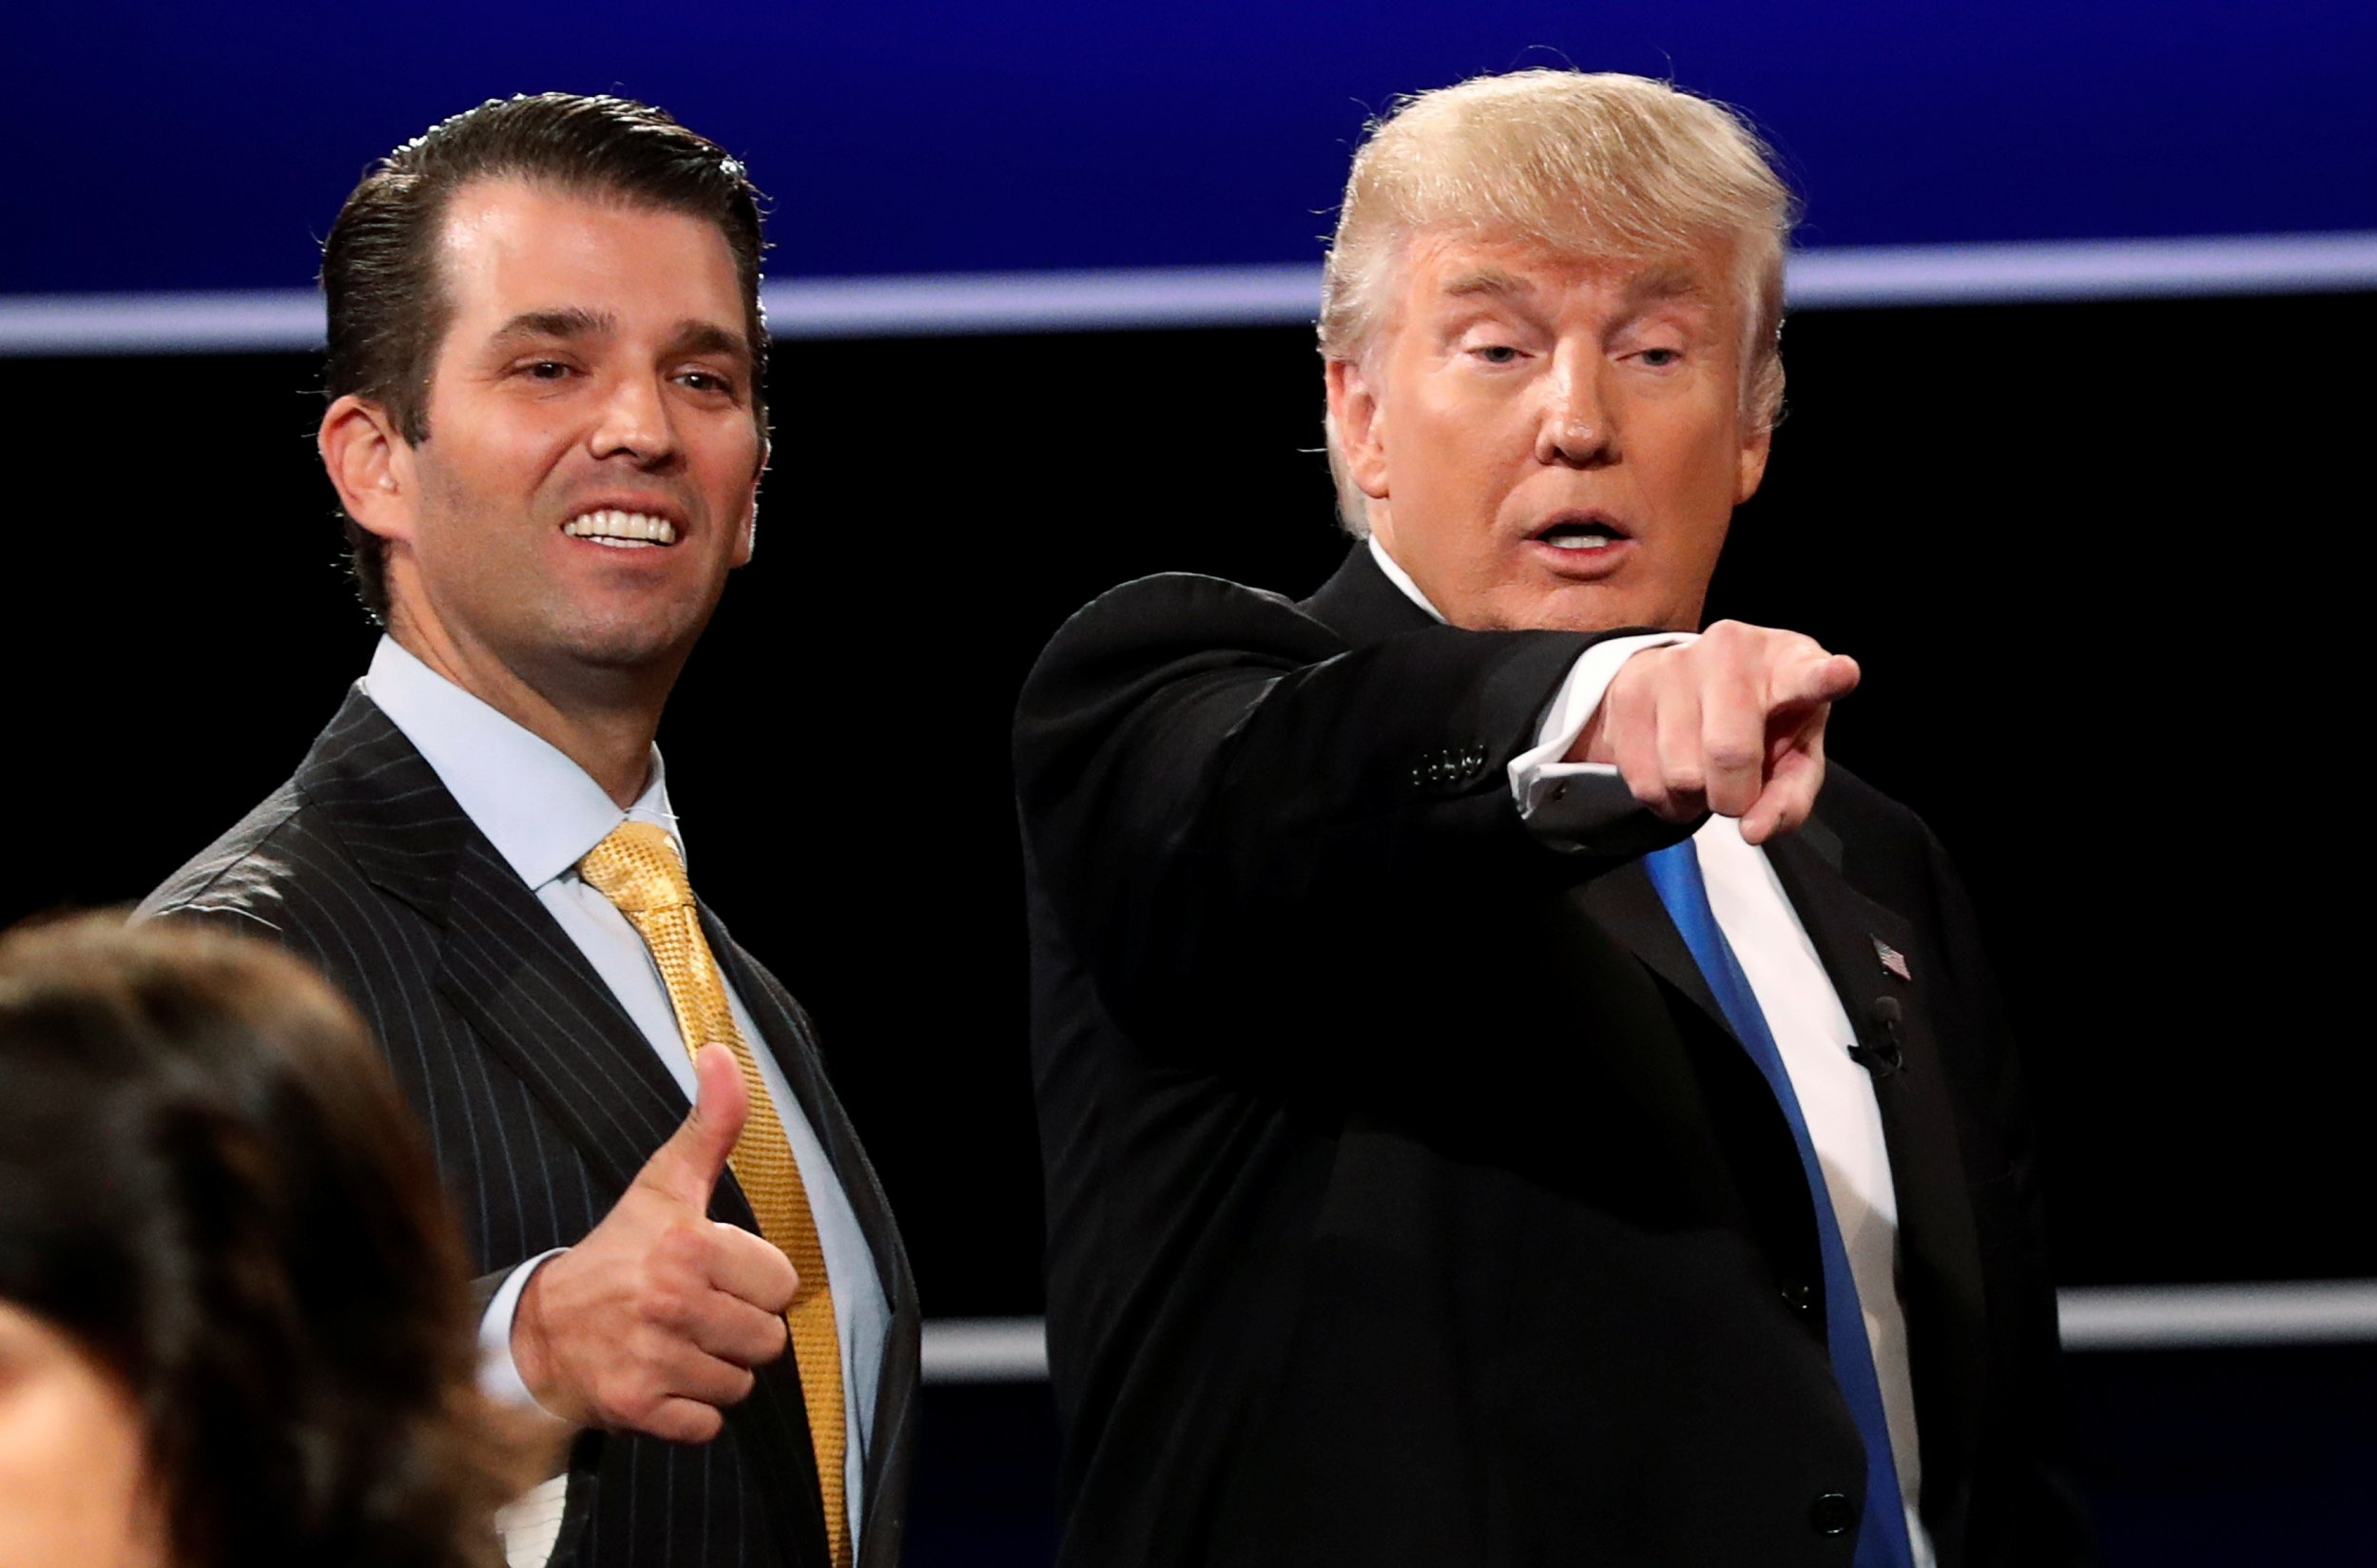 Another lawsuit against Trump, his son